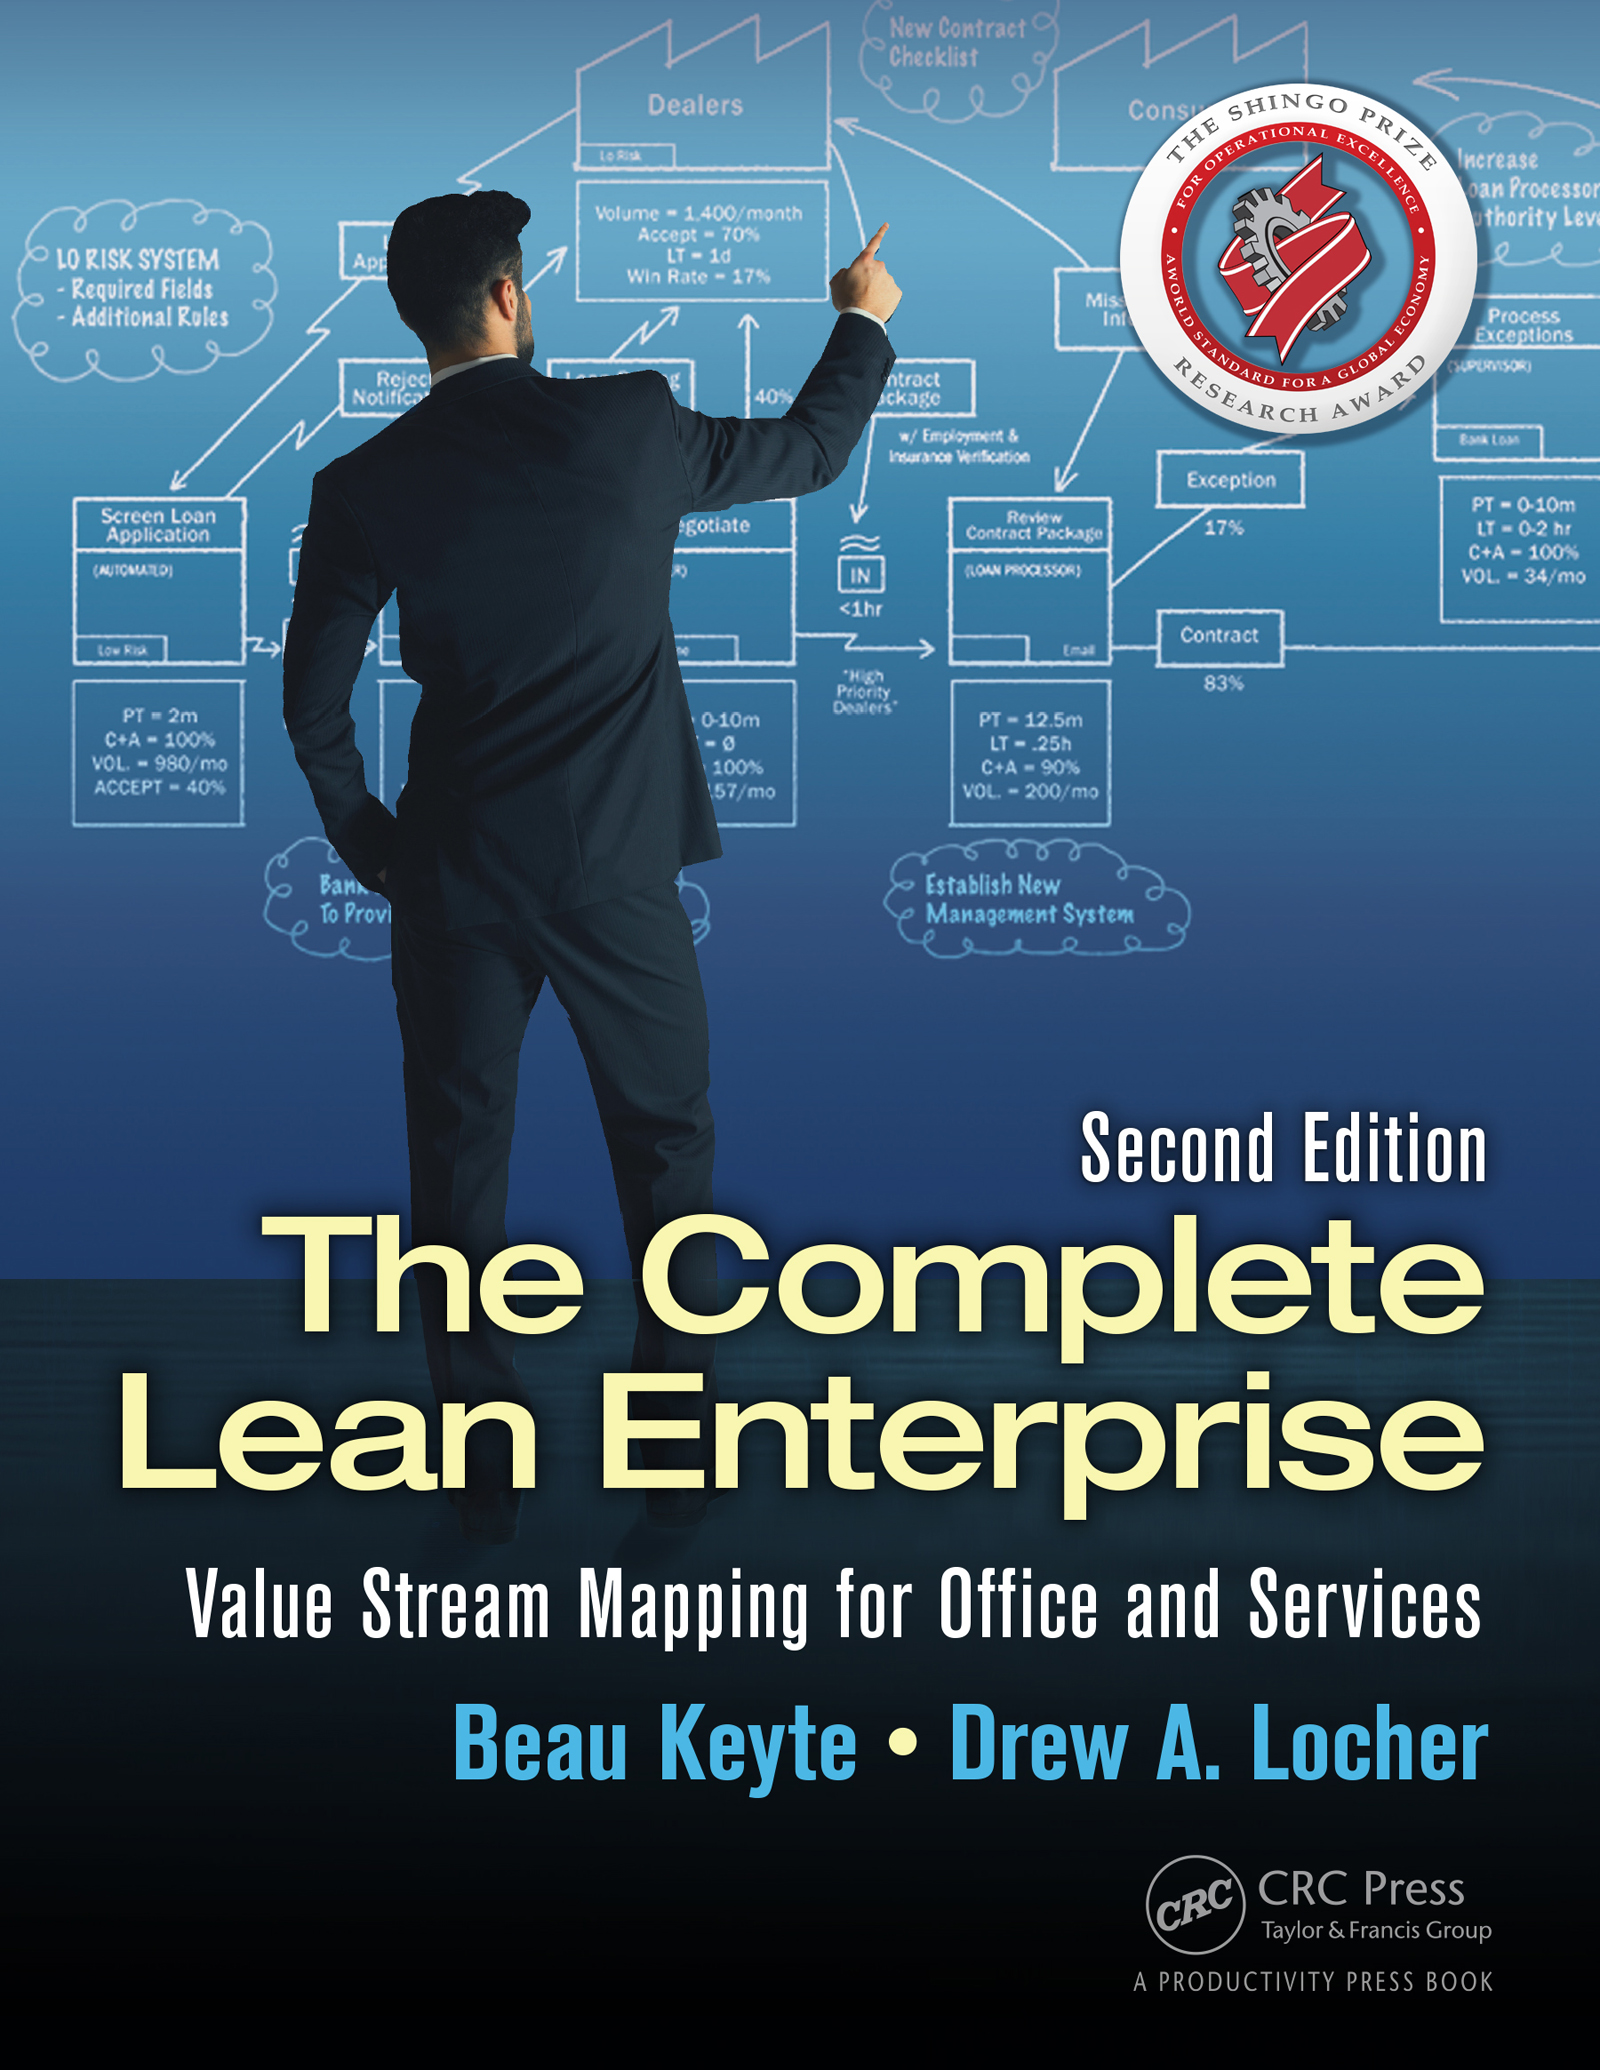 Download Ebook The Complete Lean Enterprise (2nd ed.) by Beau Keyte Pdf